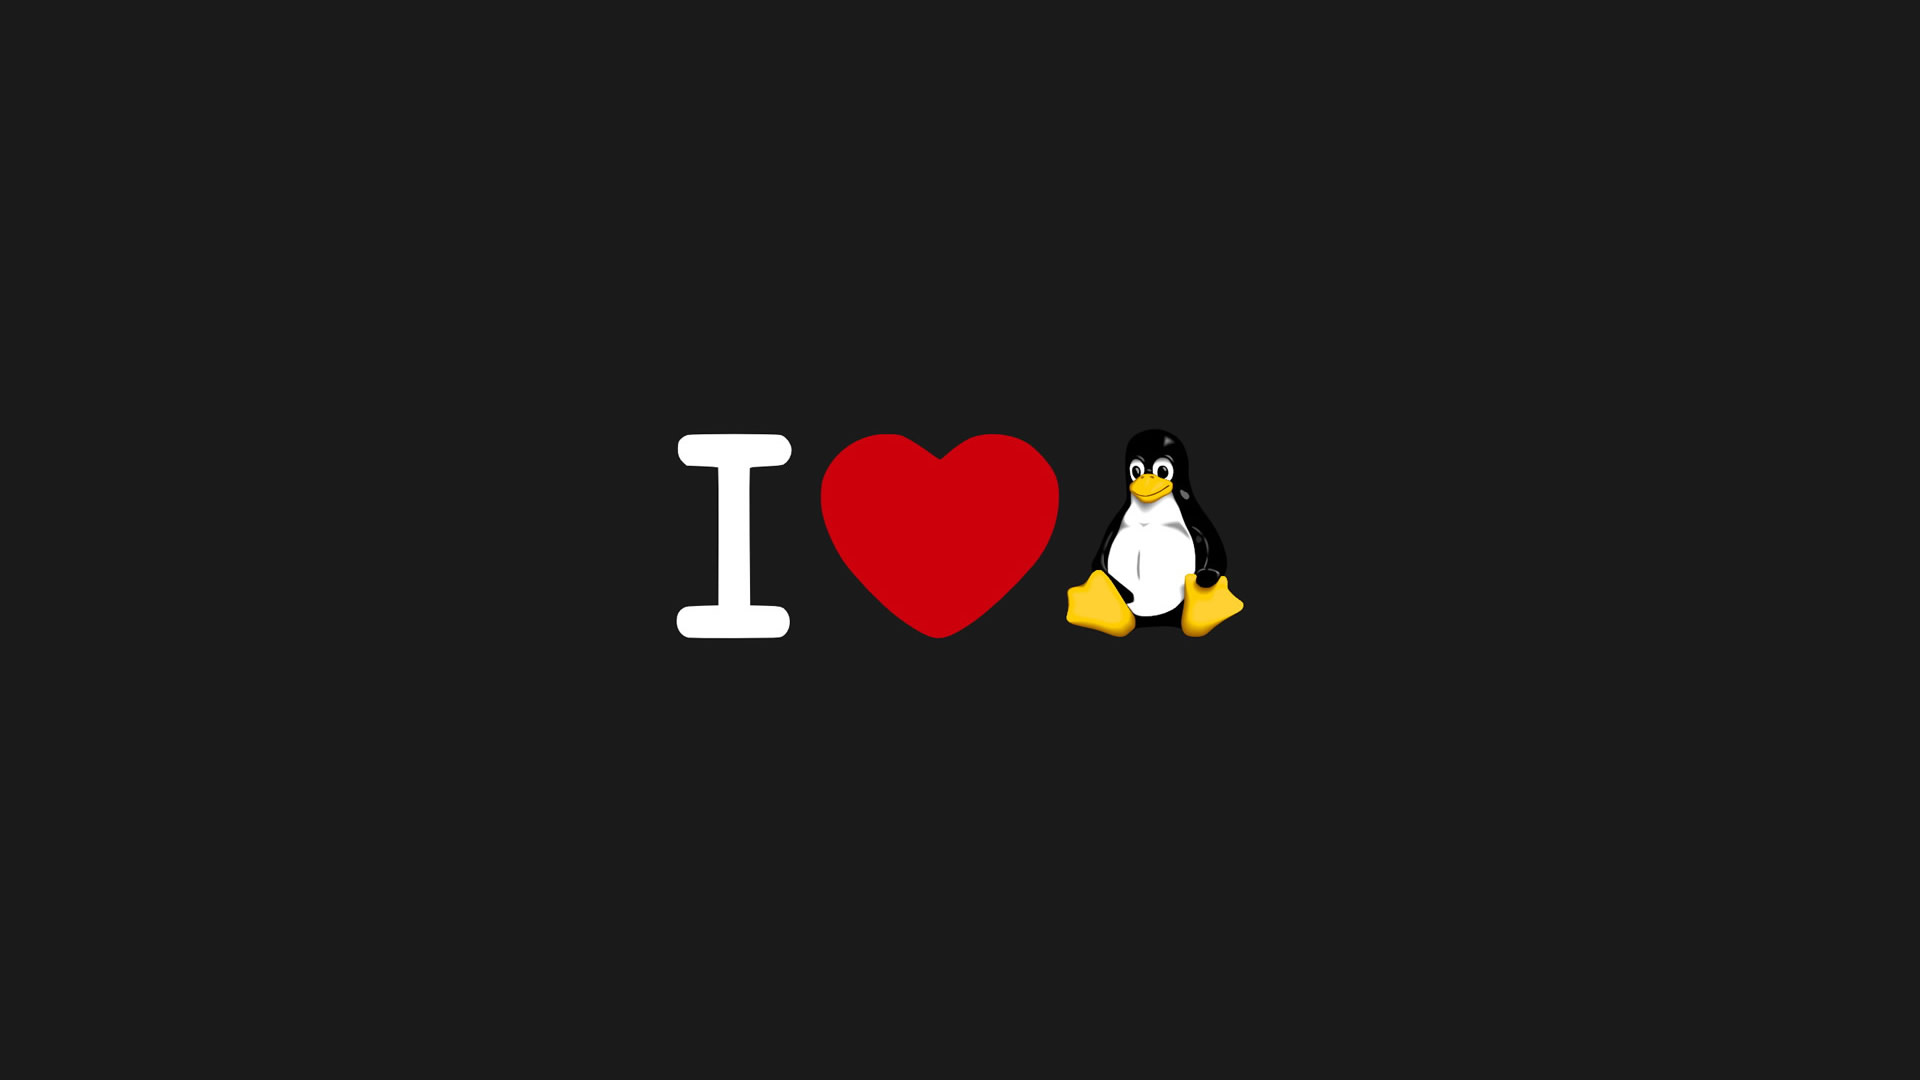 linux wallpaper hd   wwwhigh definition wallpapercom 1920x1080